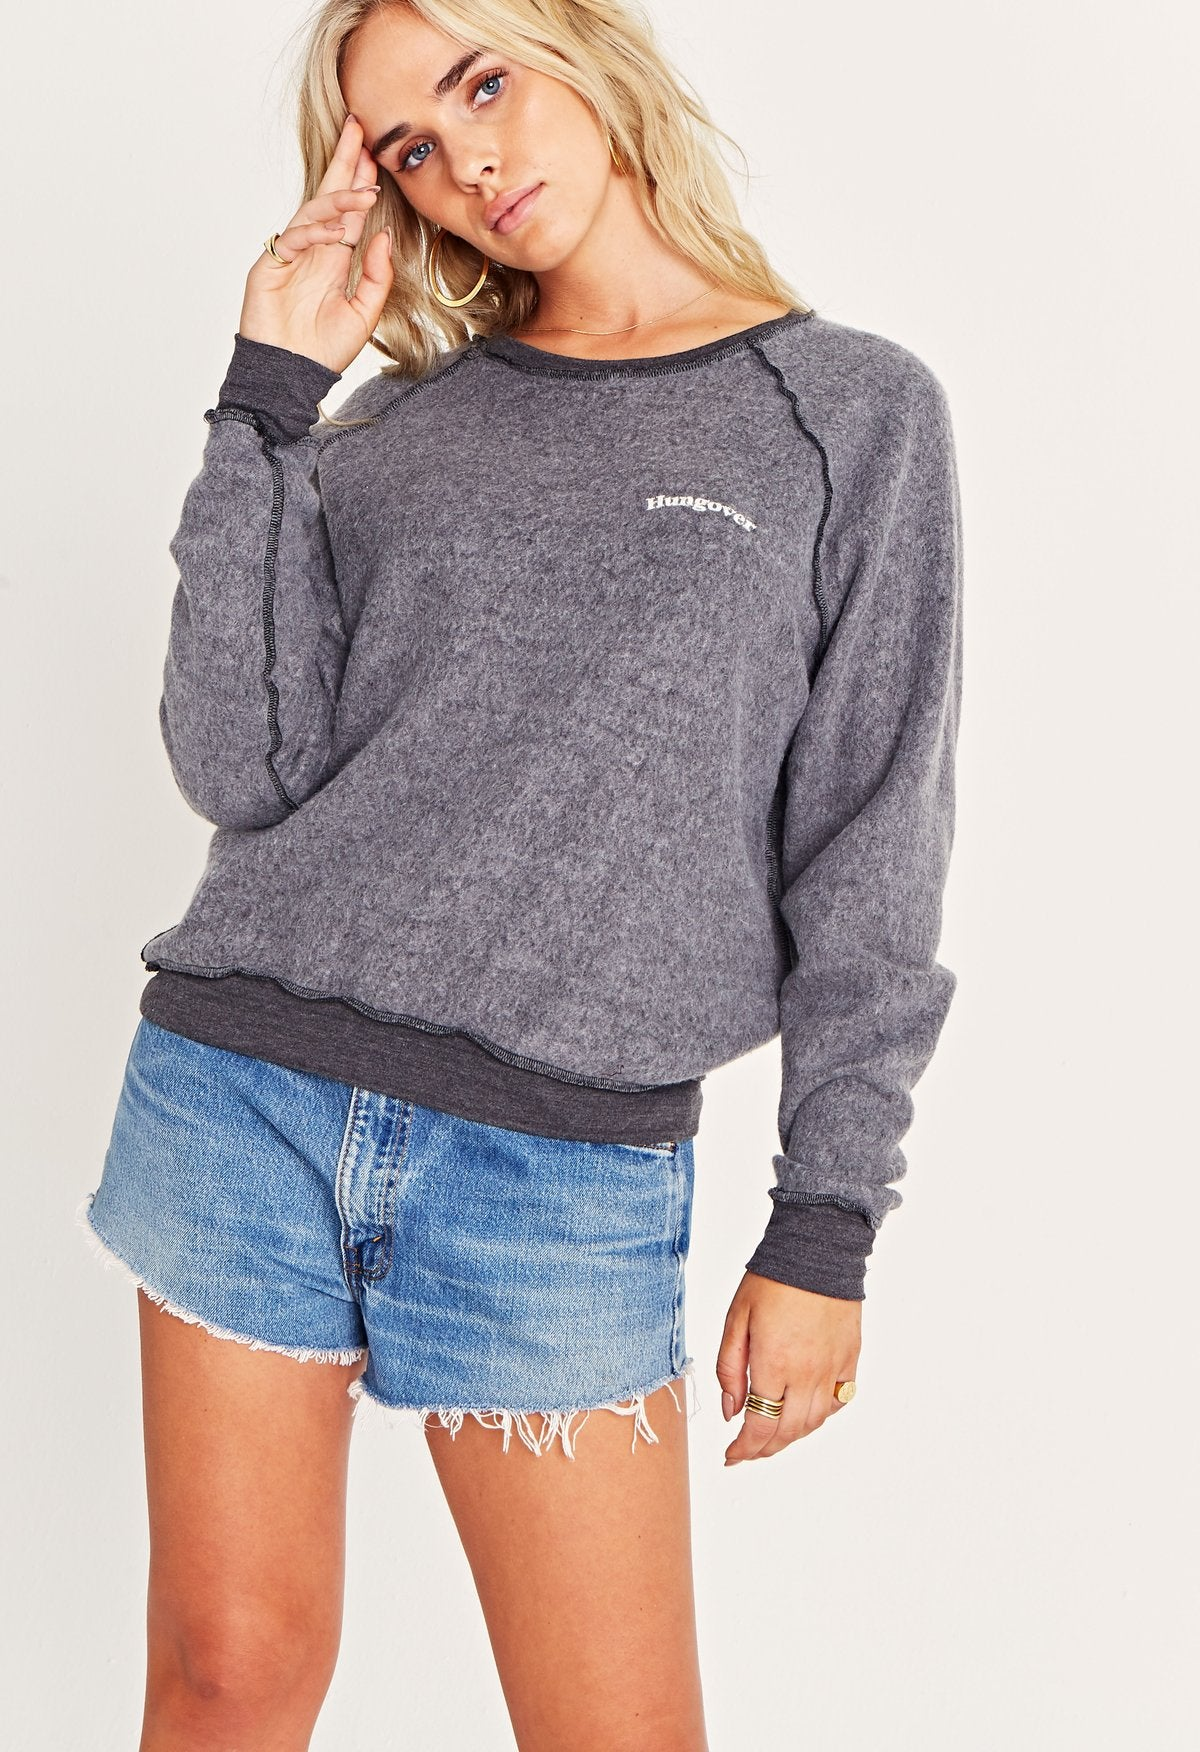 PROJECT SOCIAL T Happy Hour/Hungover Sweatshirt